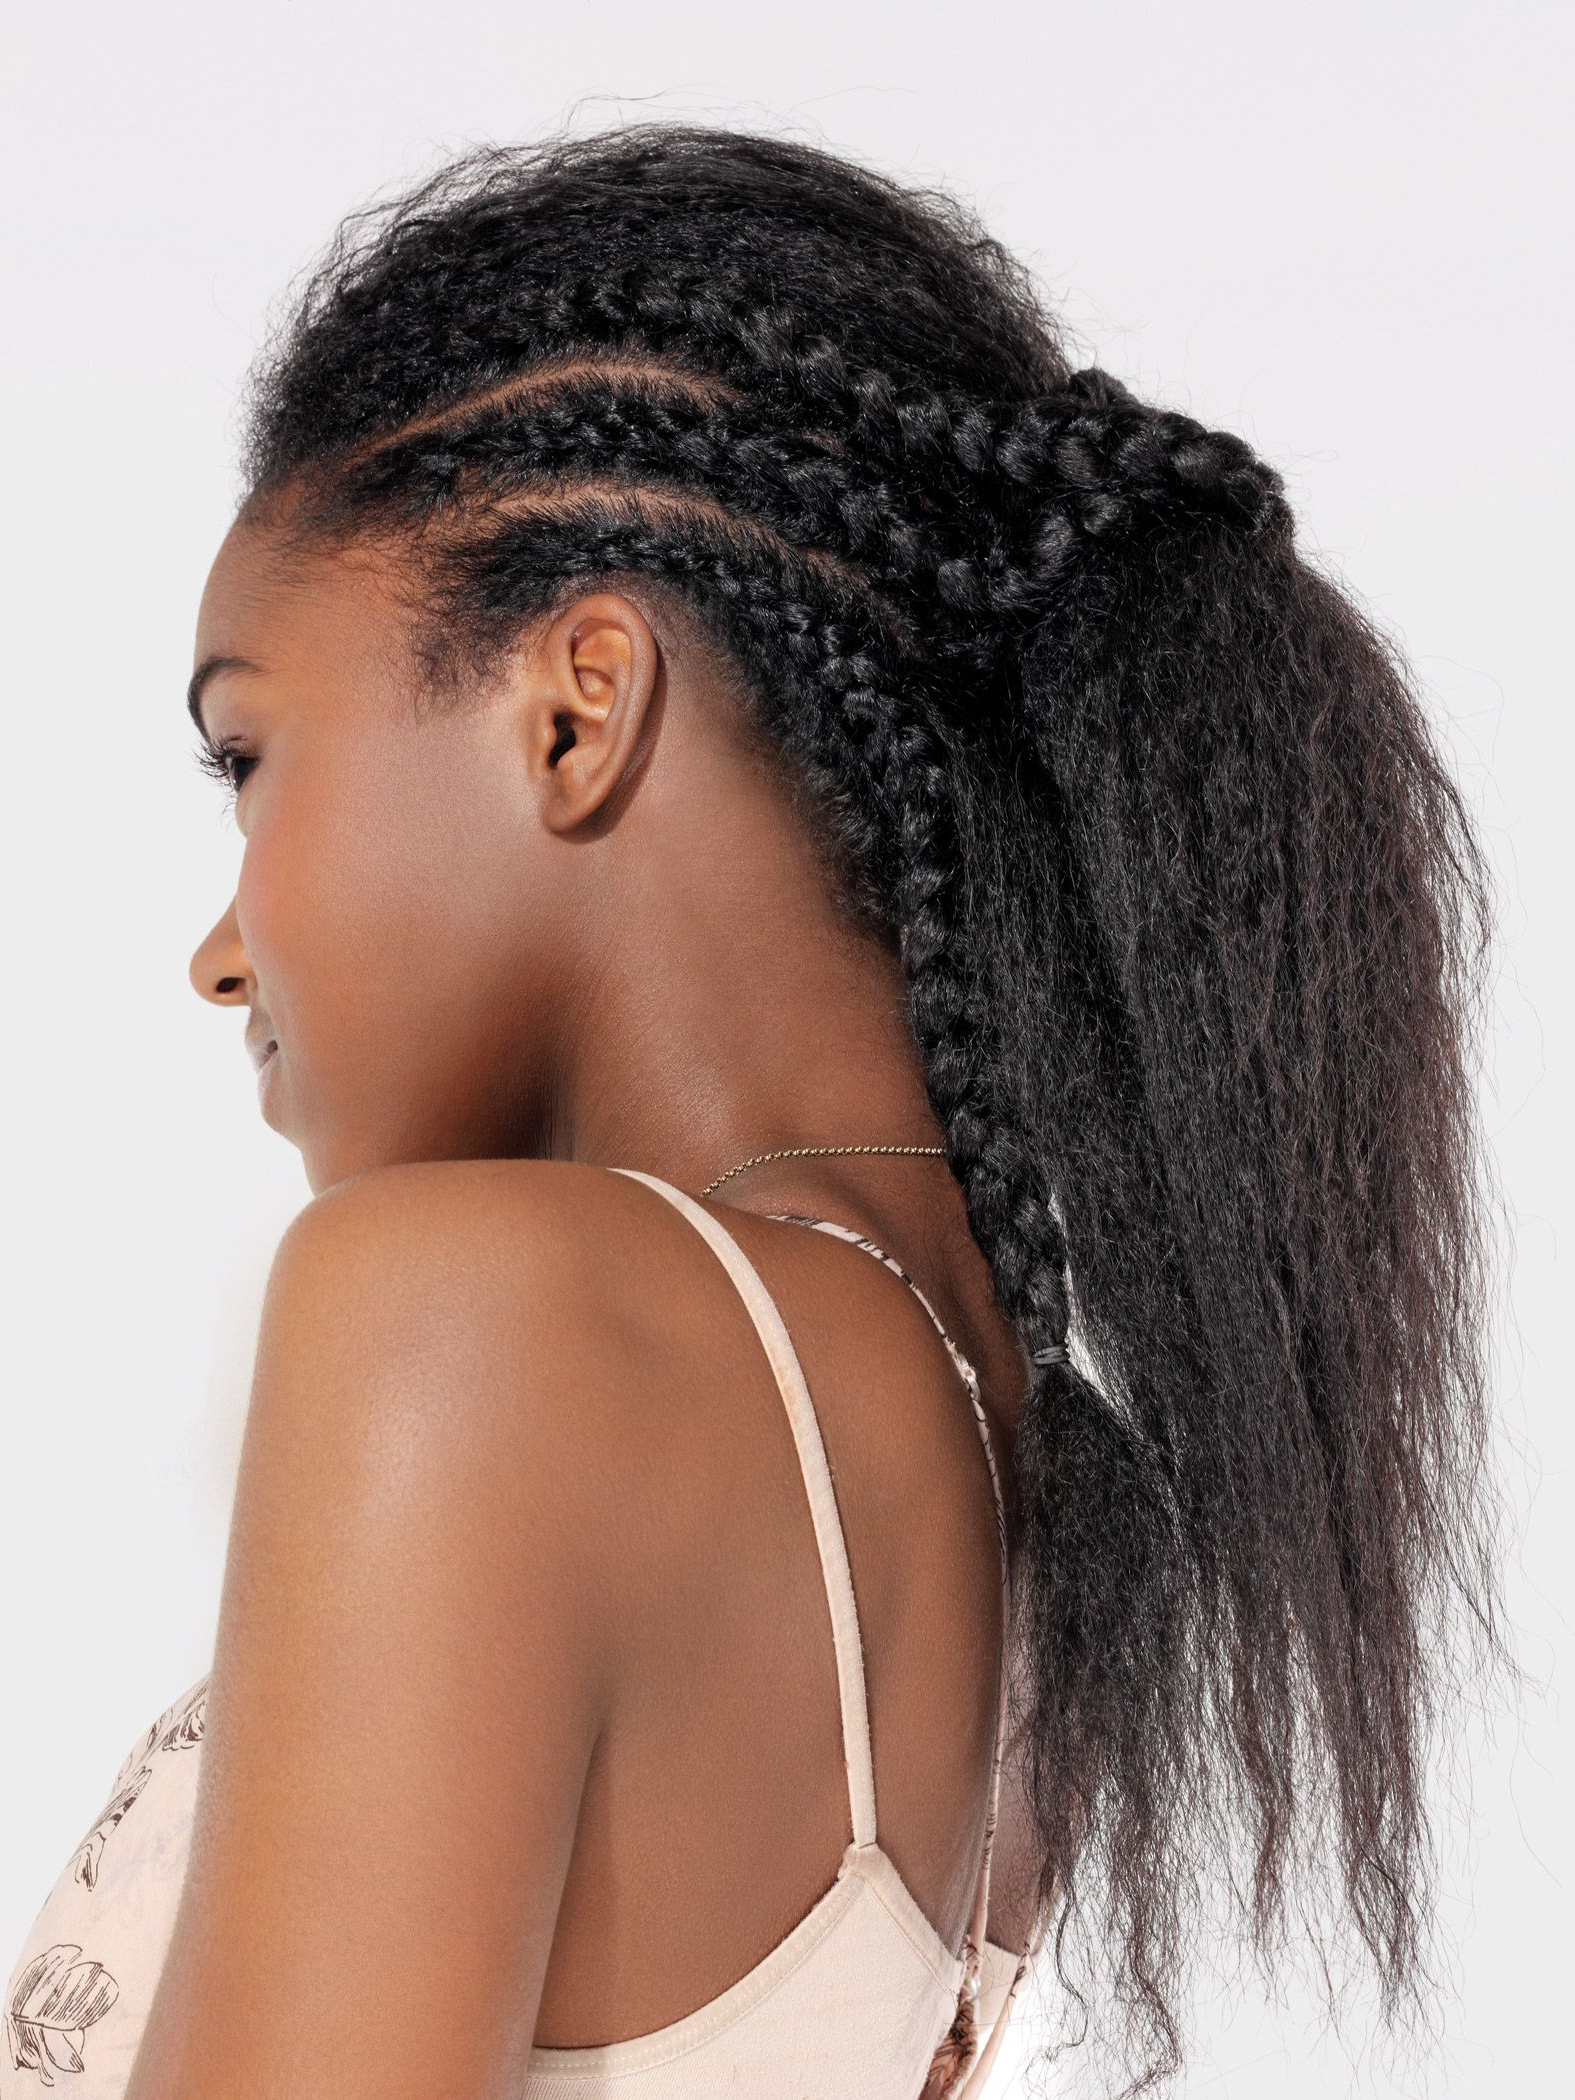 Latest Super Tiny Braids Intended For 42 Braid Hairstyle Ideas For Teens – Best Braided Hairstyles (View 7 of 20)